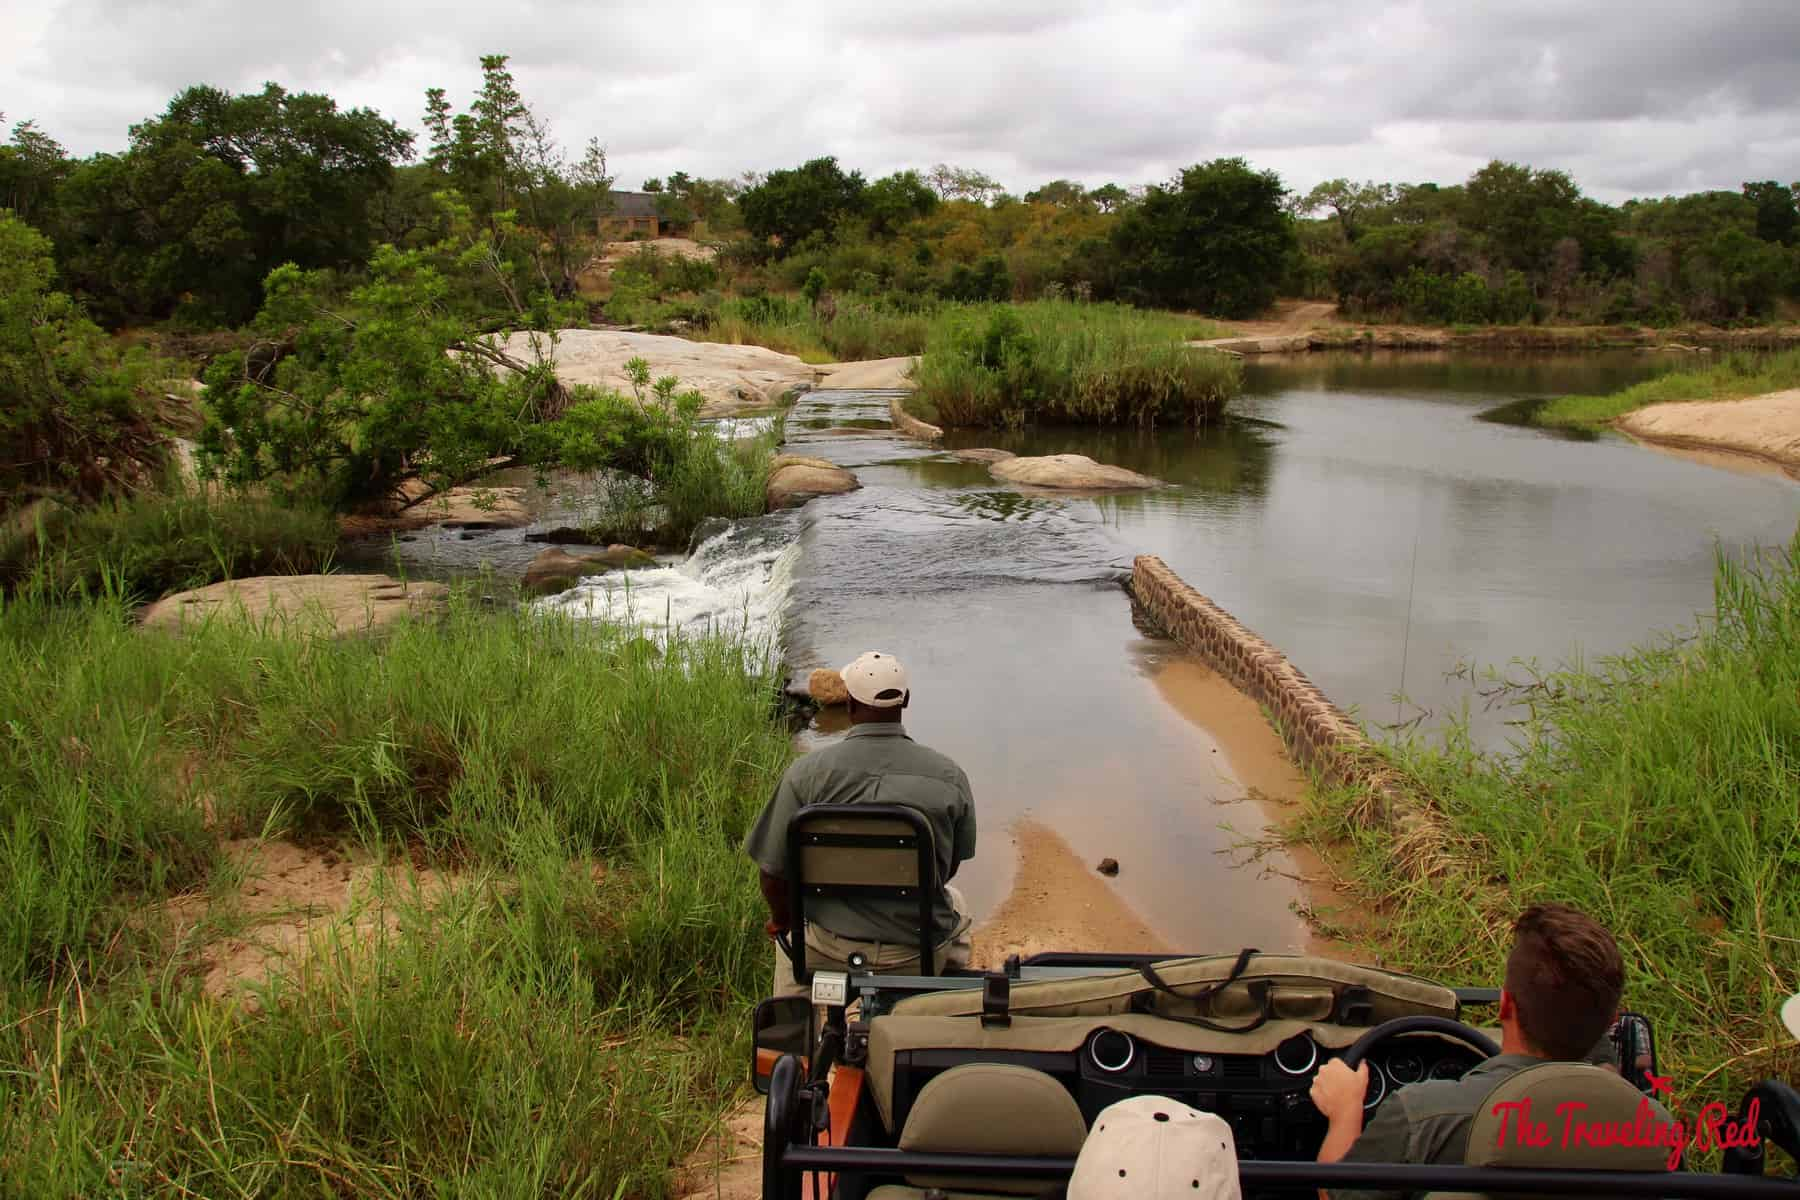 Game drive in South Africa